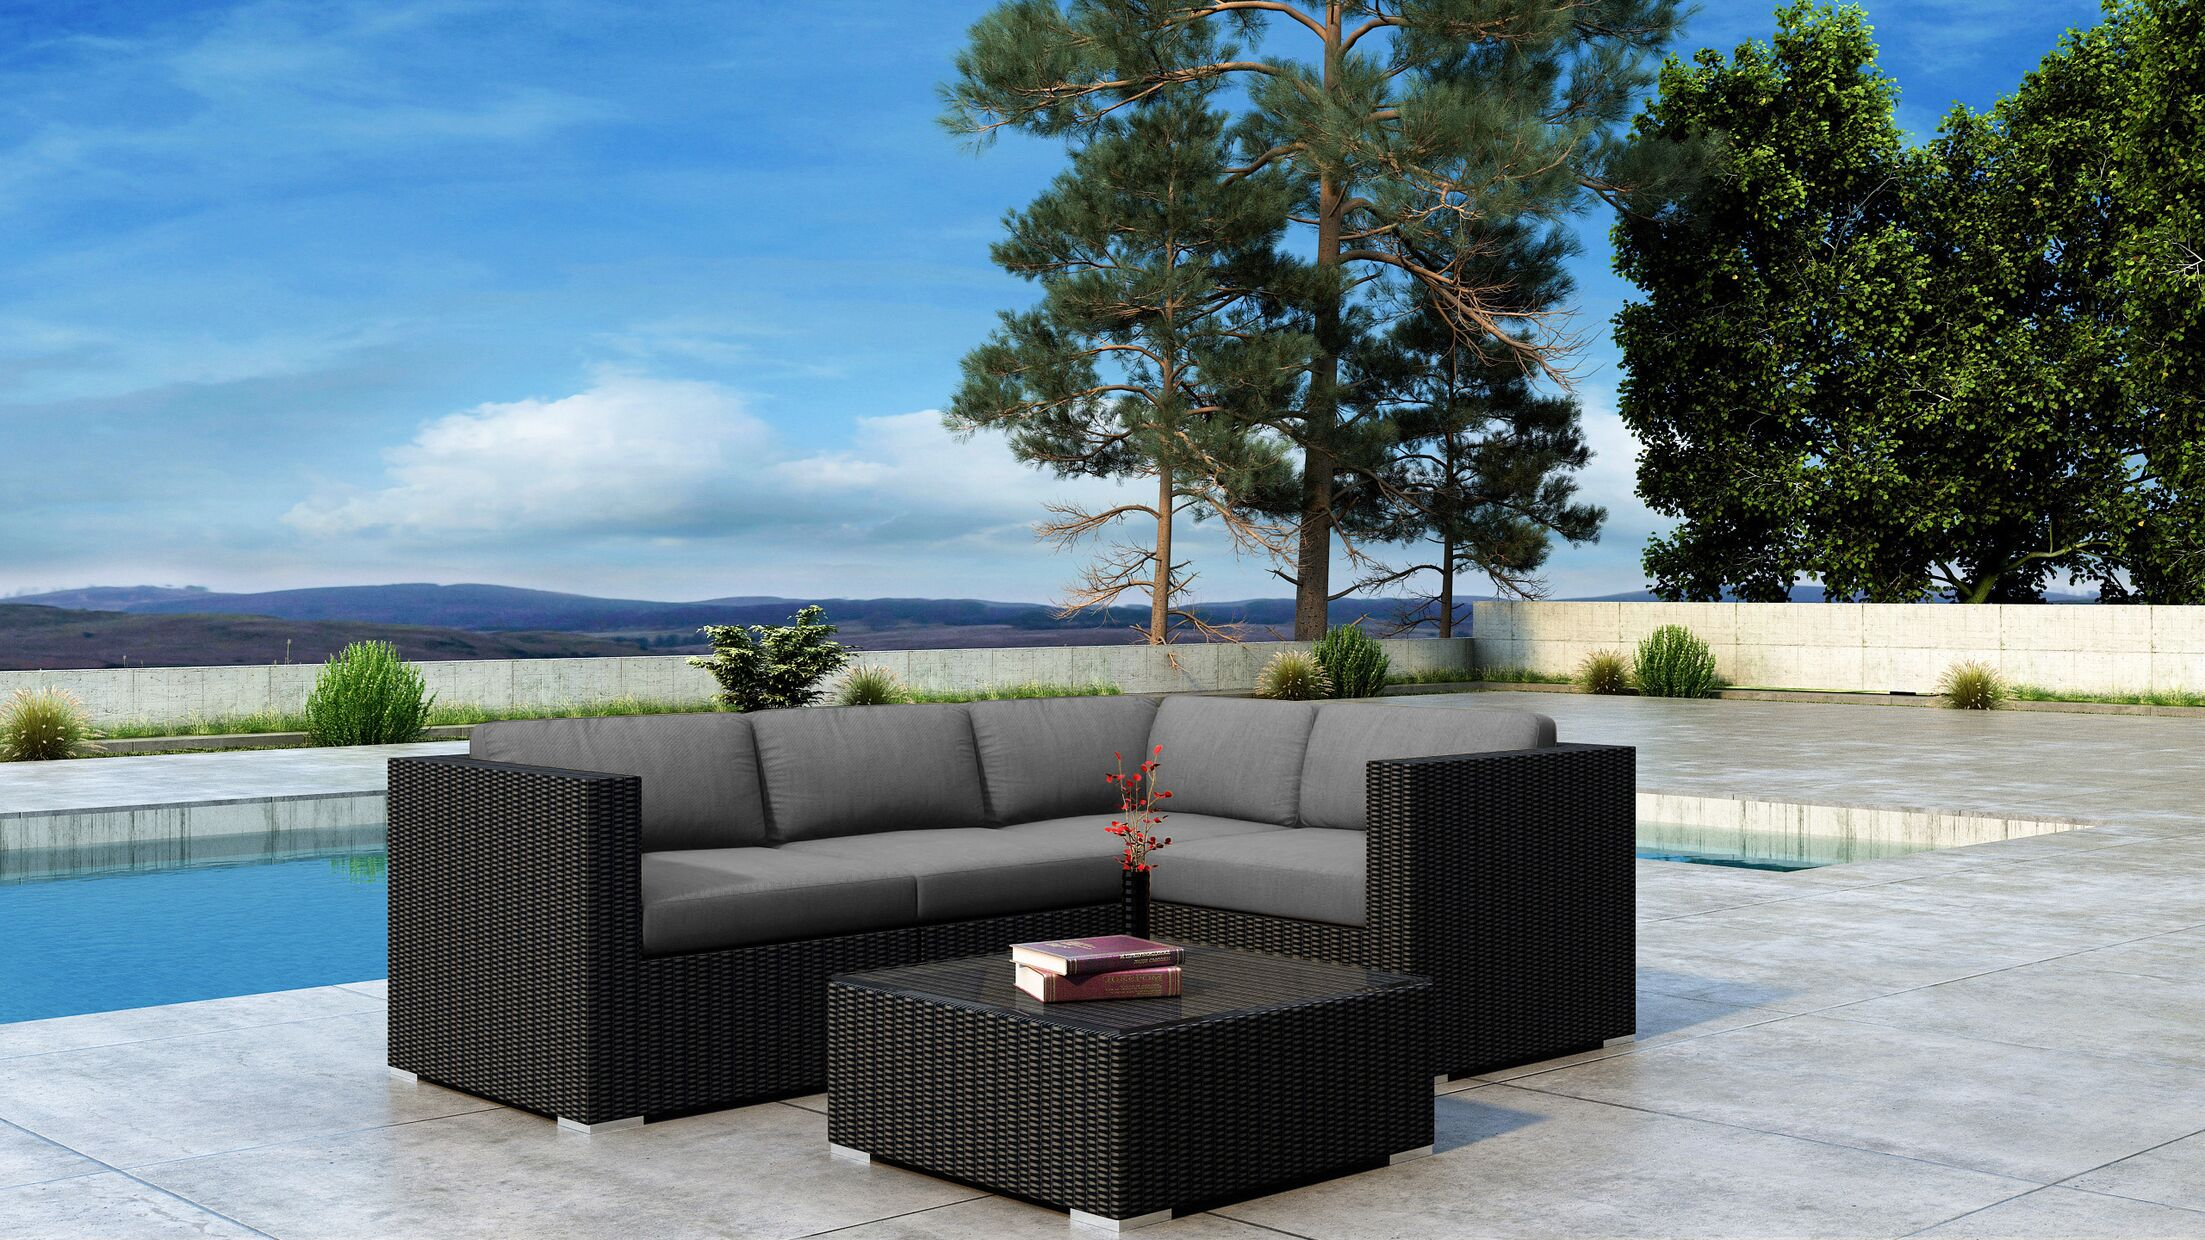 Glendale 5 Piece Sofa Set with Sunbrella Cushion Cushion Color: Canvas Charcoal